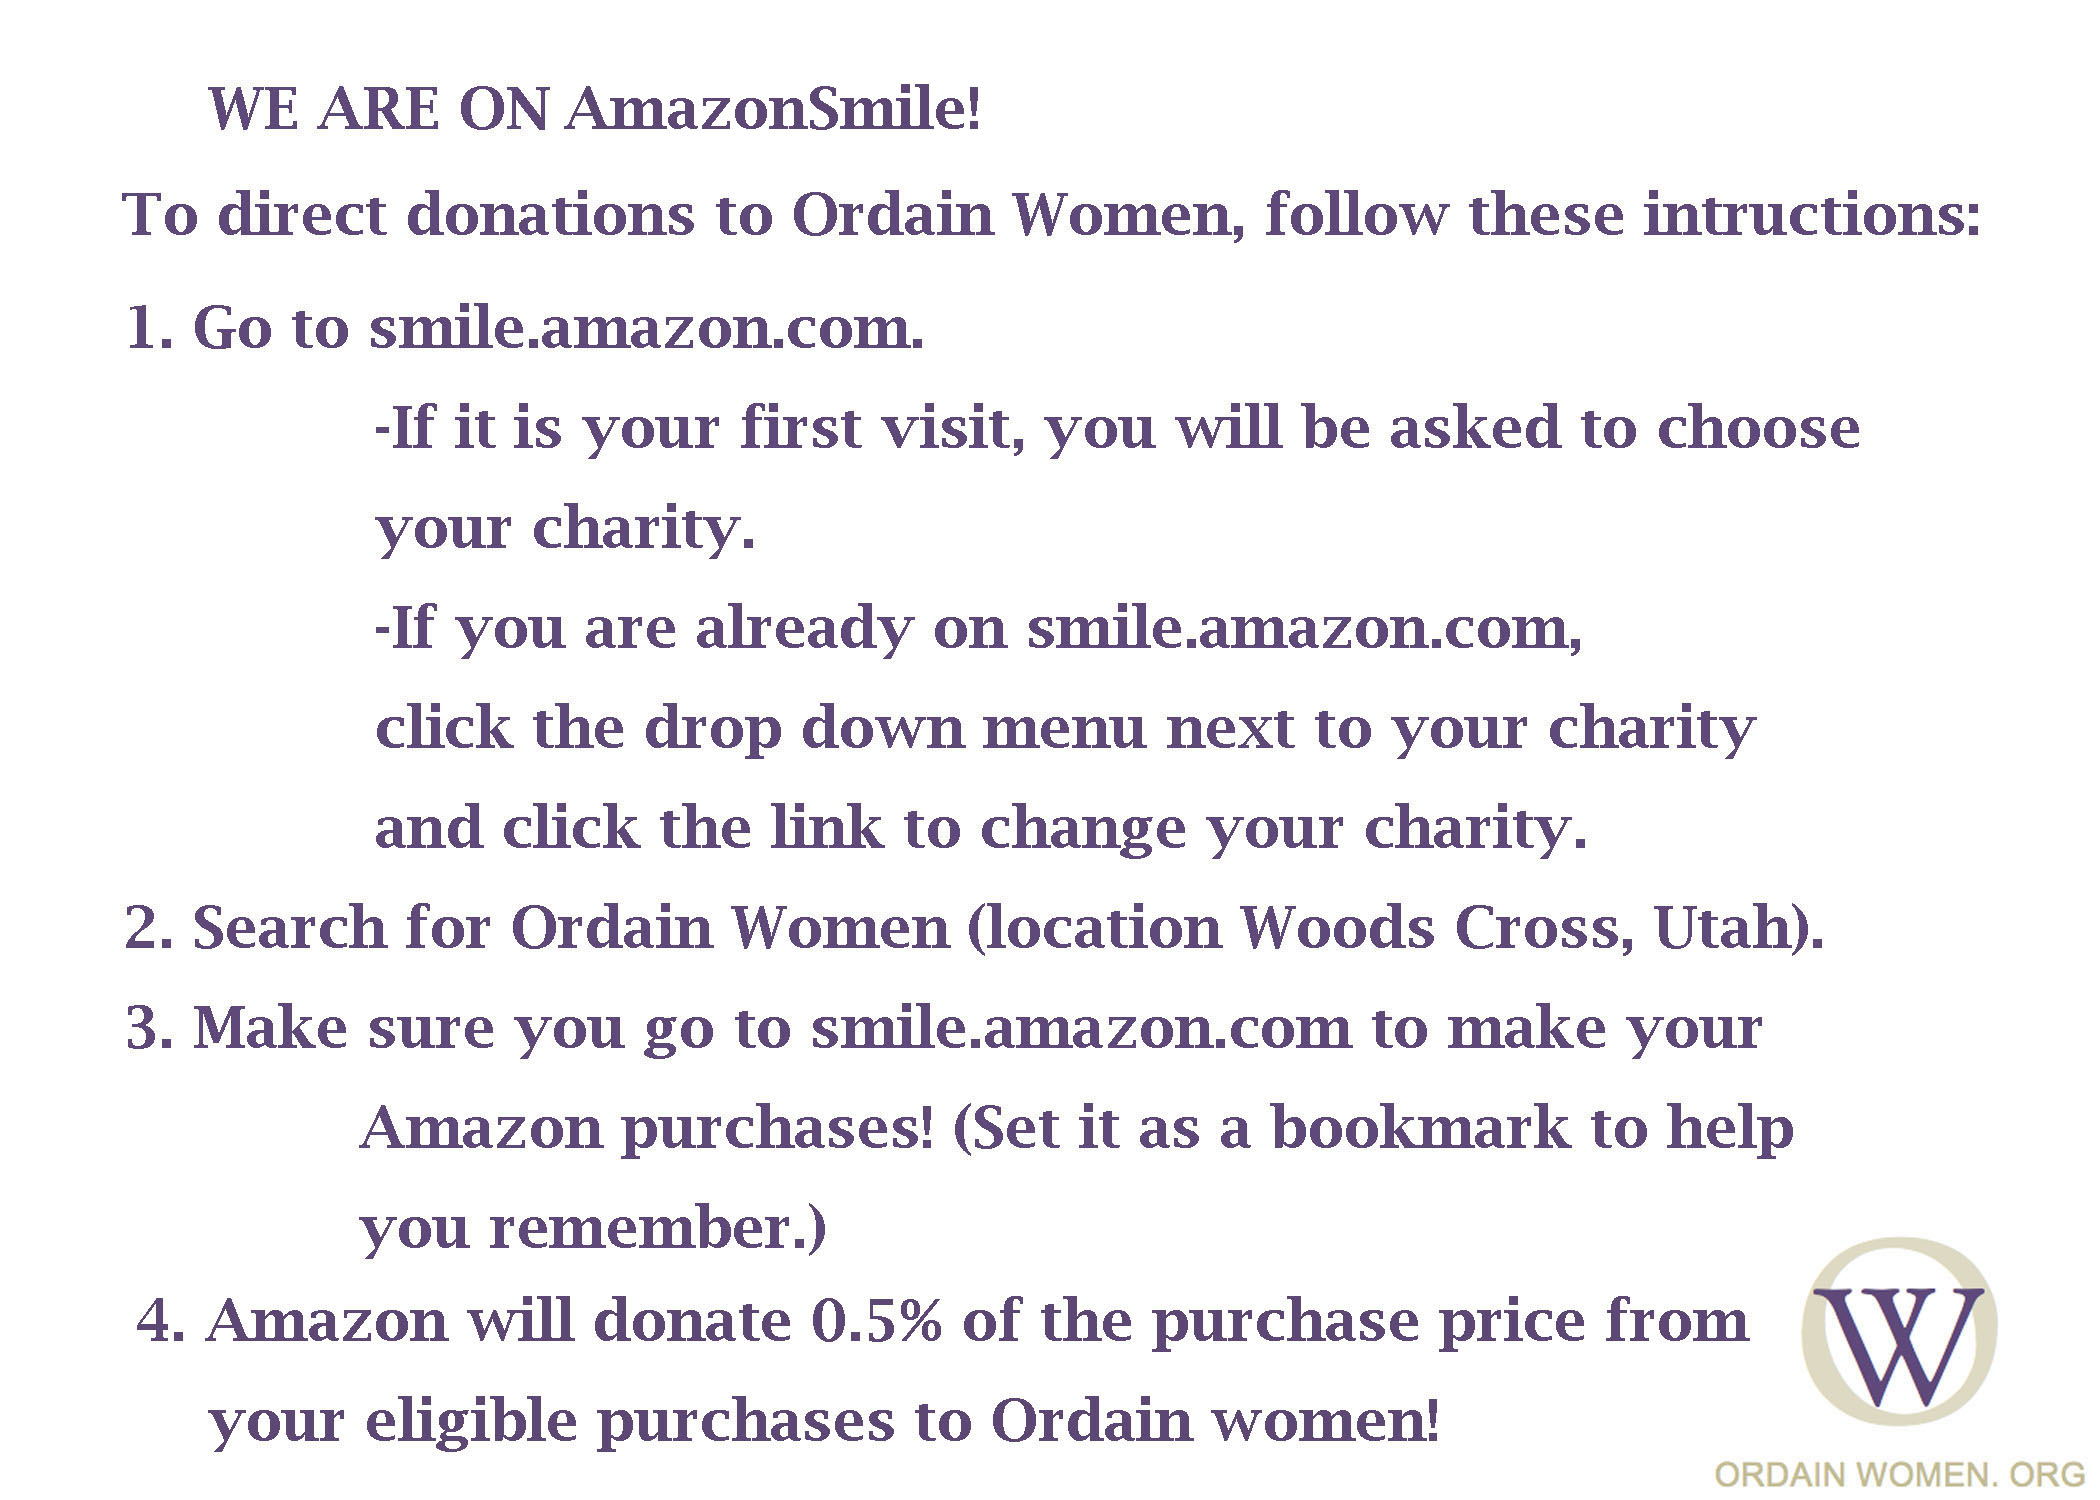 Image, Text reads: We are on AmazonSmile To direct donations to Ordain Women, follow these instructions: 1.	Go to smile.amazon.com. a.	If it is your first visit, you will be asked to choose your charity. b.	If you are already on smile.amazon.com, click the drop down menu next to your charity and click the link to change your charity. 2.	Search for Ordain Women (location Woods Cross, Utah). 3.	Make sure you go to smile.amazon.com to make your Amazon purchases! (Set it as a bookmark to help you remember.) 4.	Amazon will donate 0.5% of the purchase price from your eligible purchases to Ordain Women!